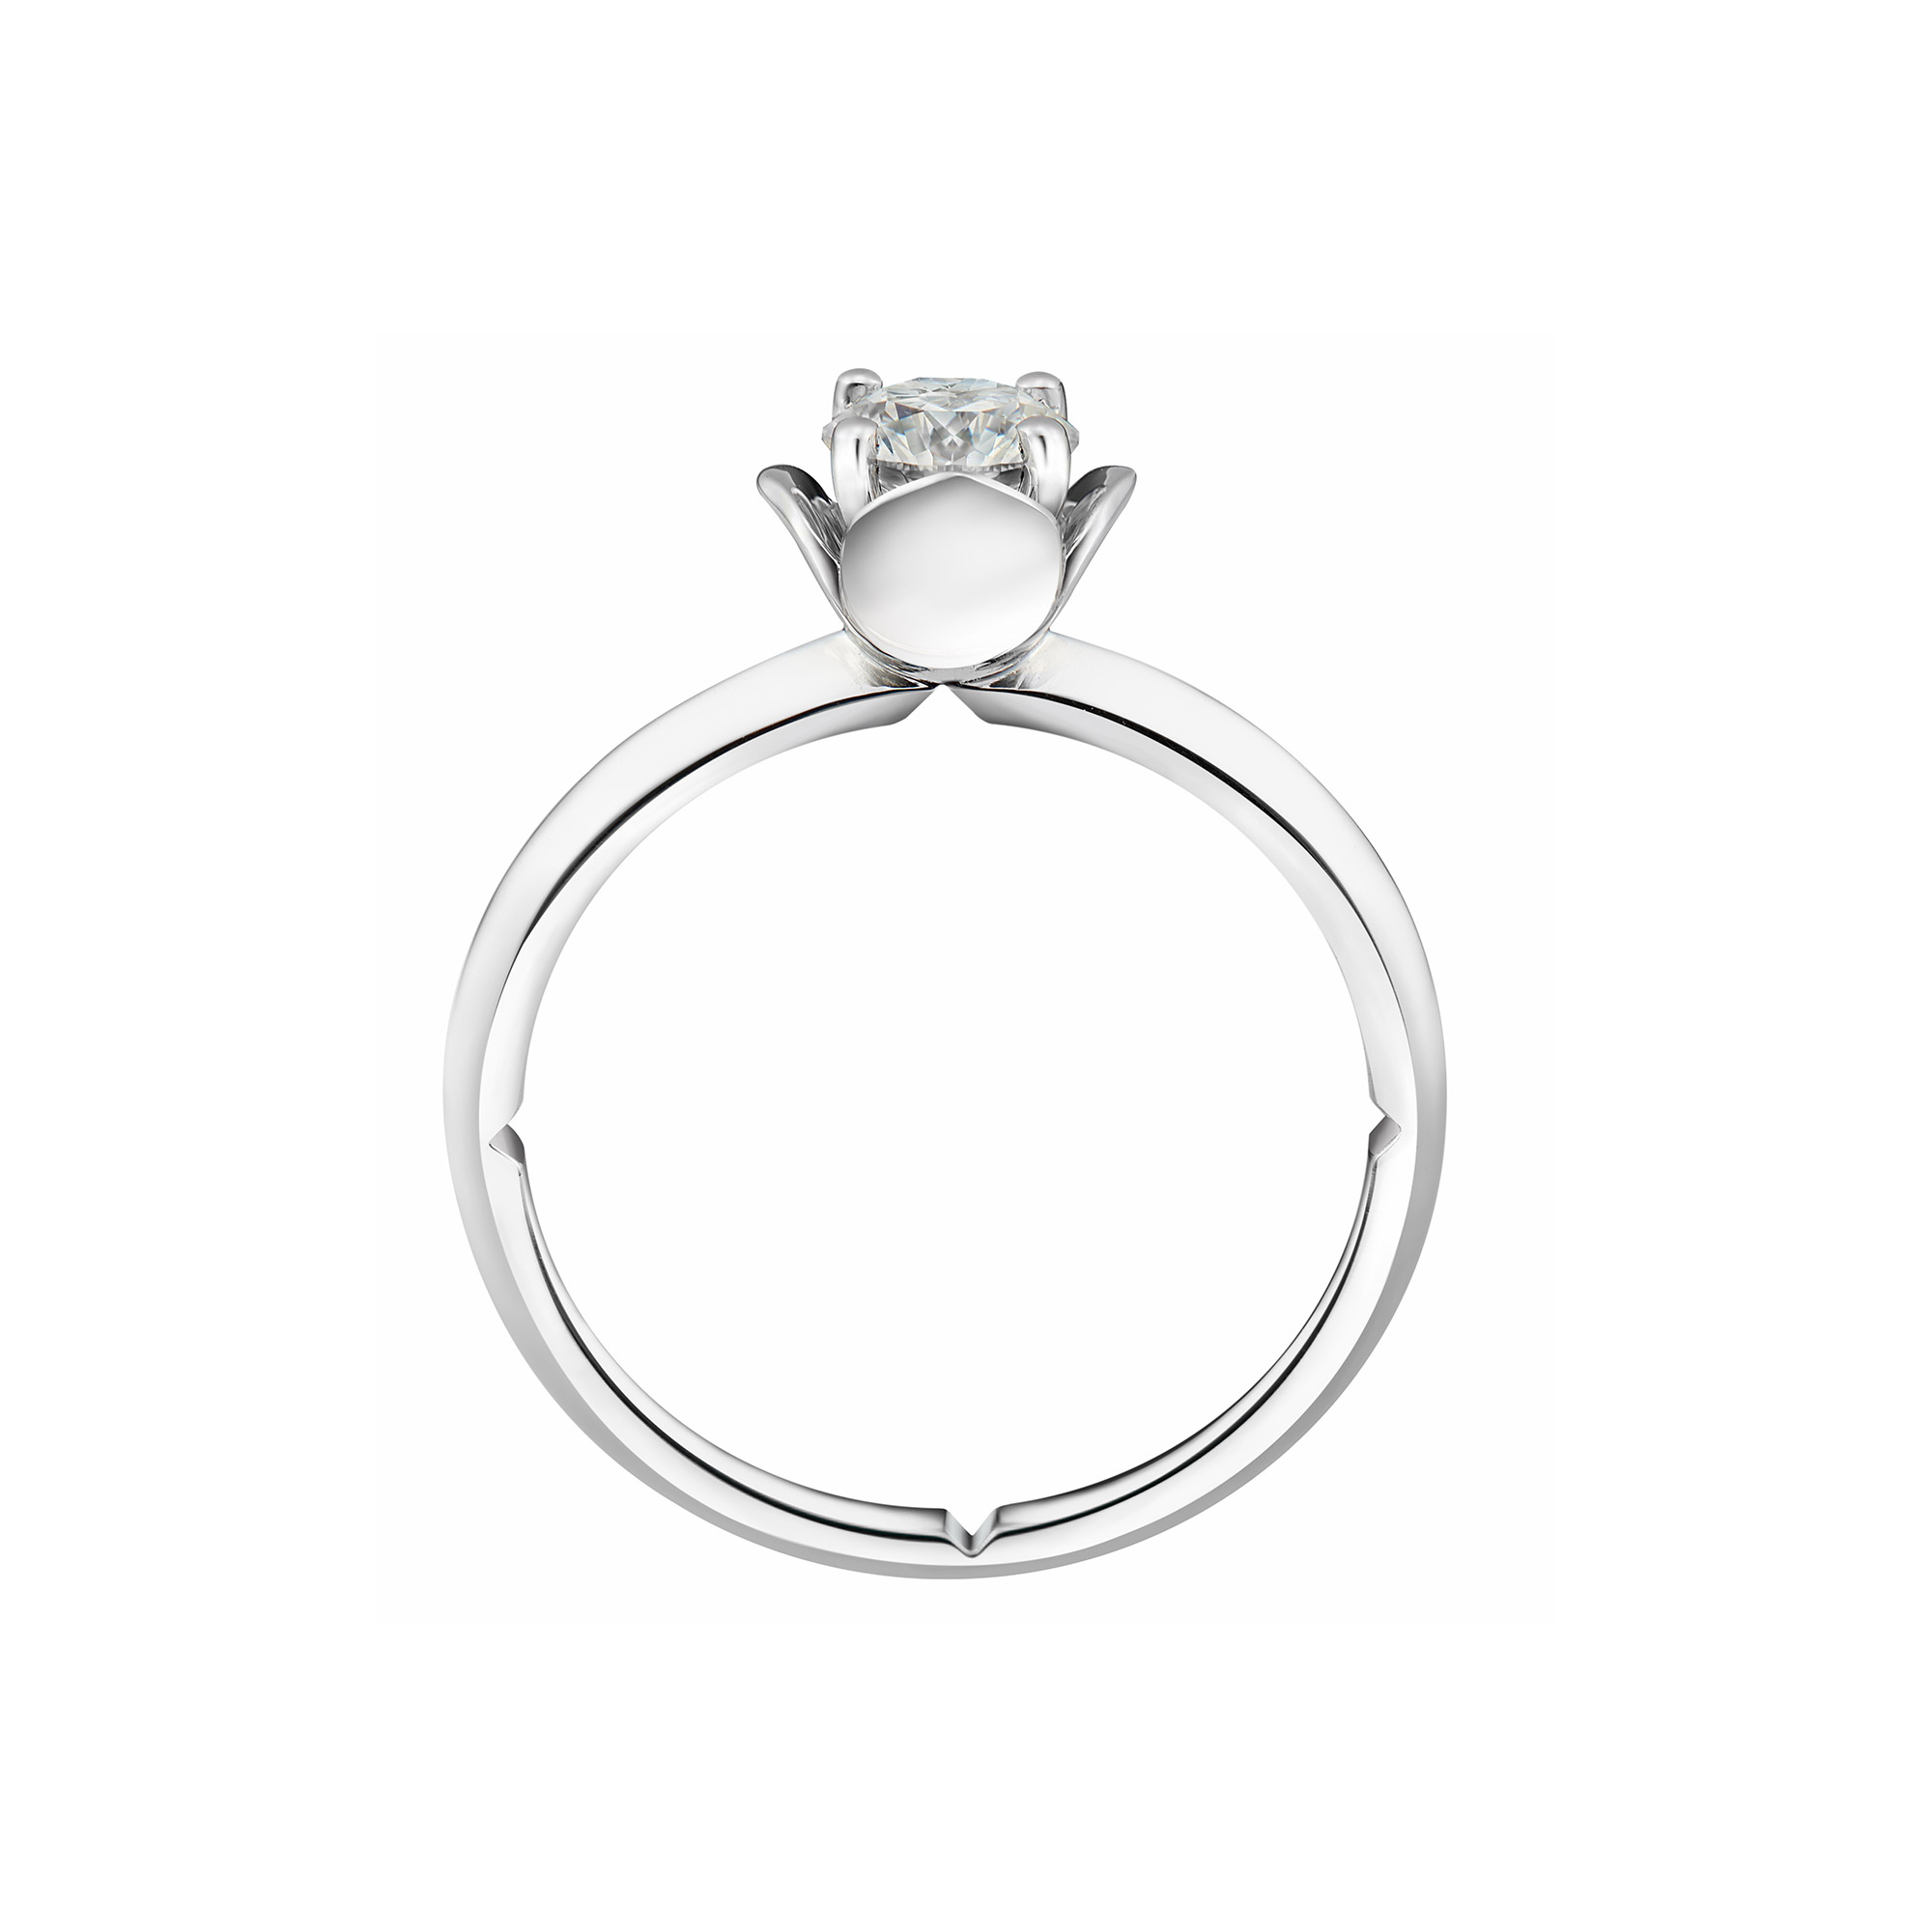 Lazare Love Blossom Diamond Ring